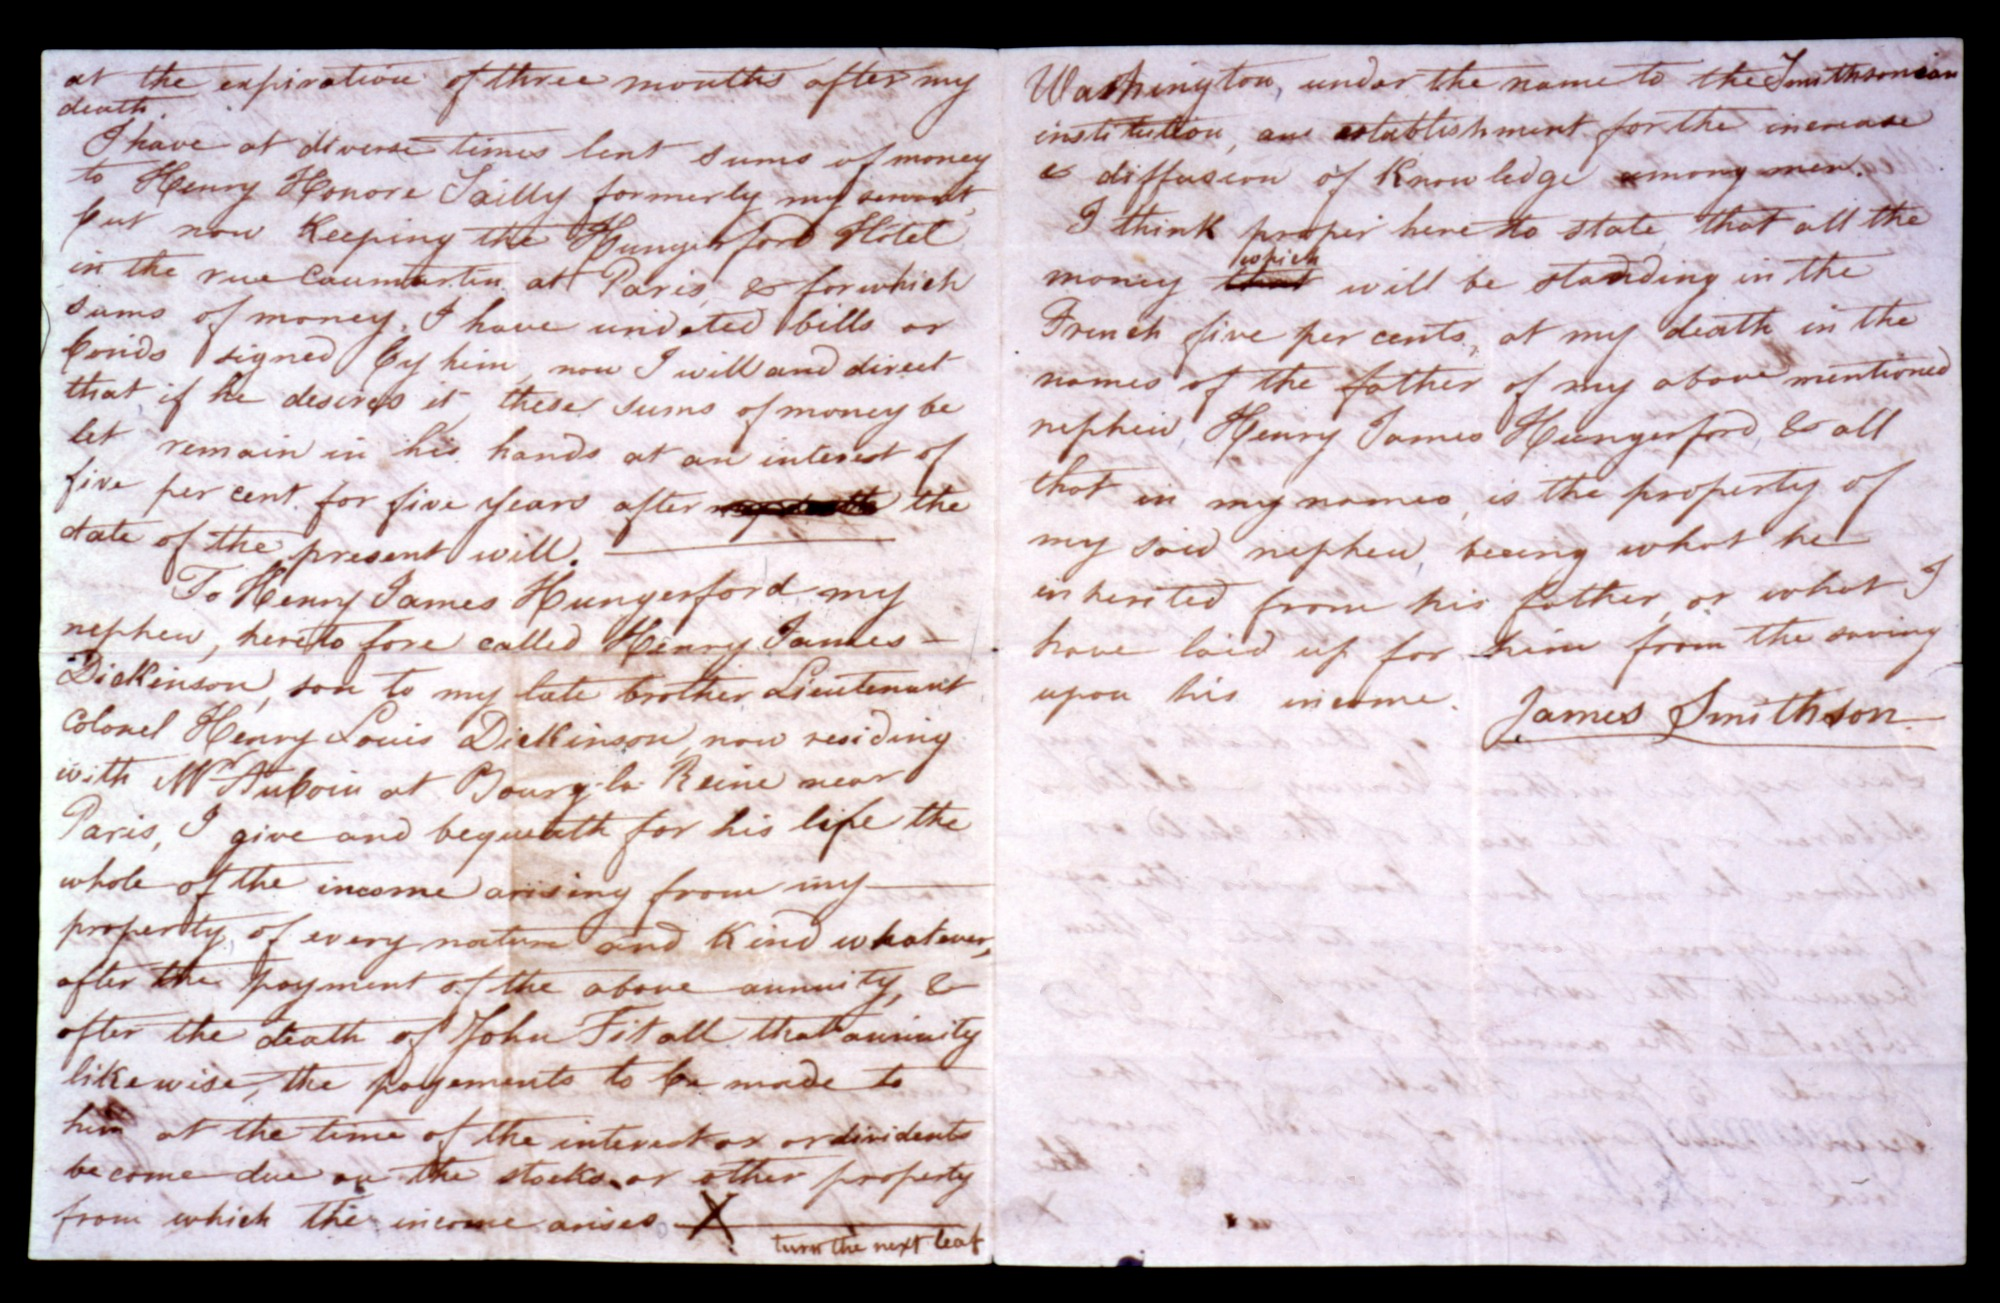 Draft of the Will of James Smithson